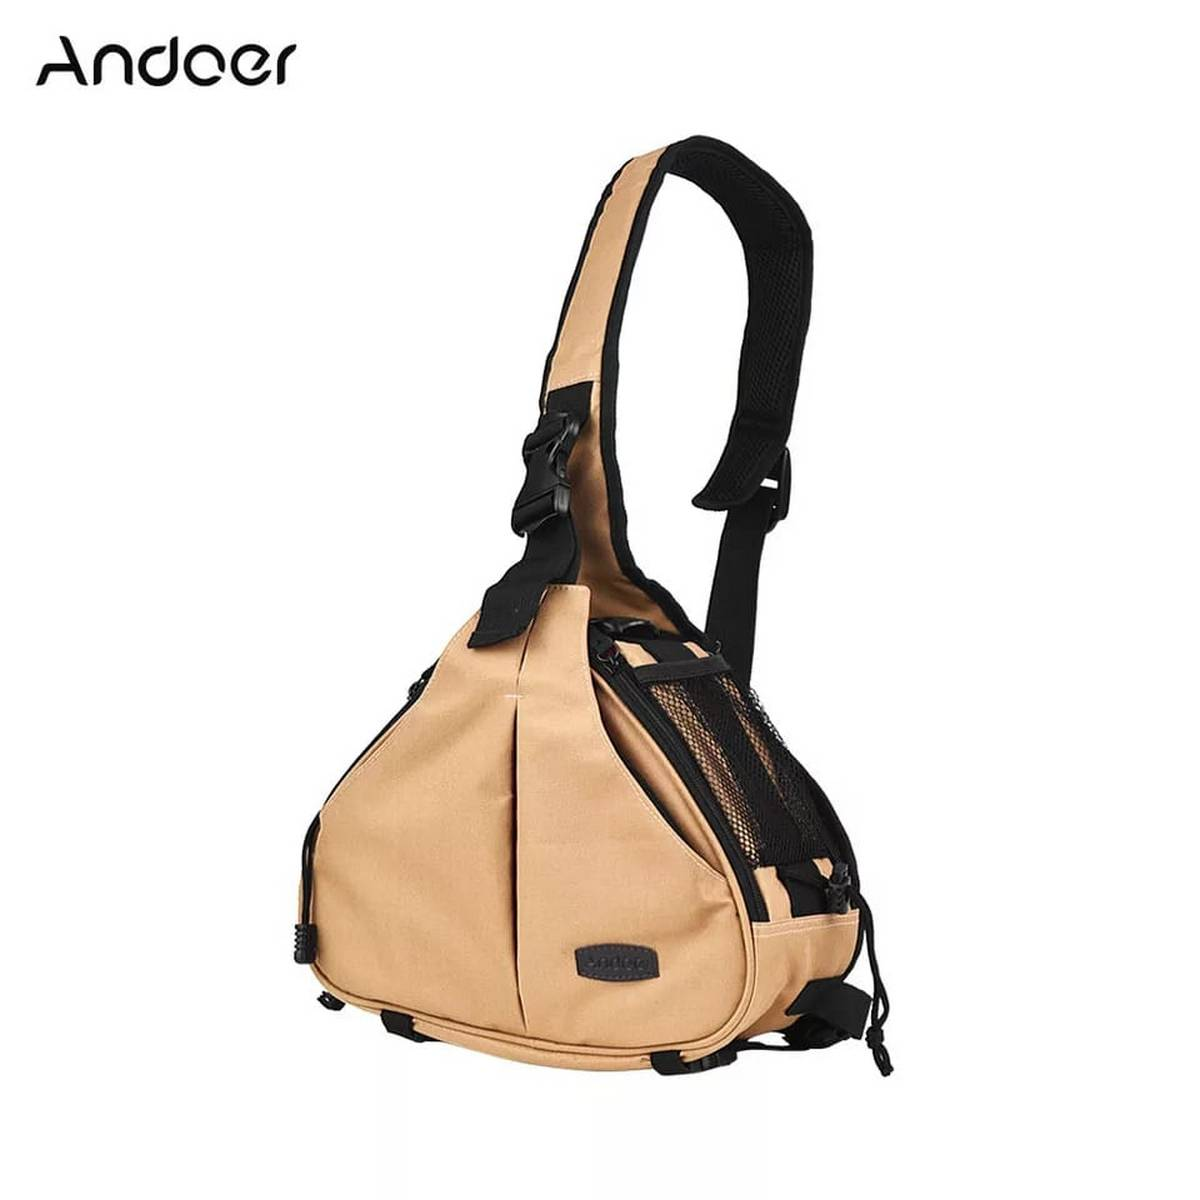 Outdoor Small DSLR Digital Camera Video Backpack Water-resistant Multi-functional Breathable Camera Bags